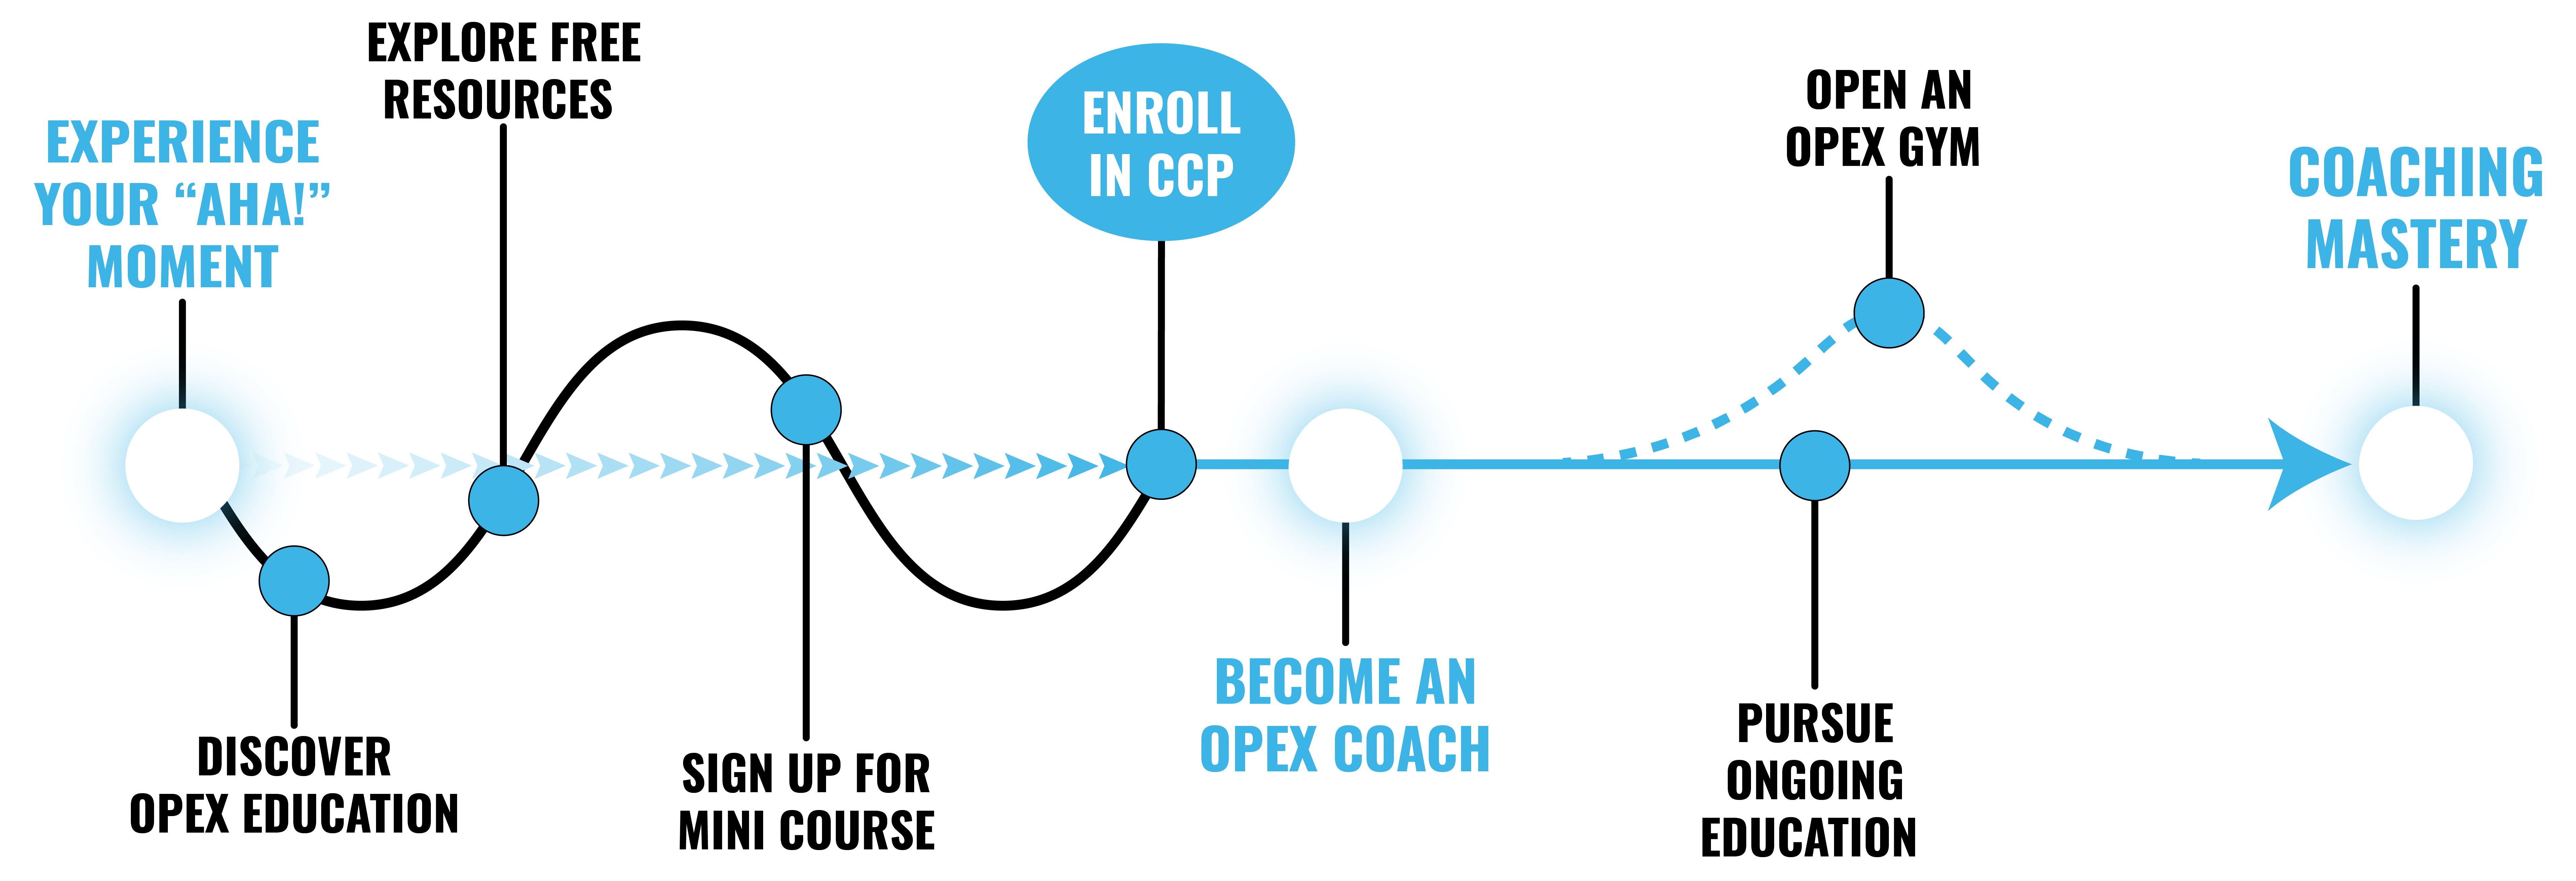 OPEX fitness coaching mastery pathway